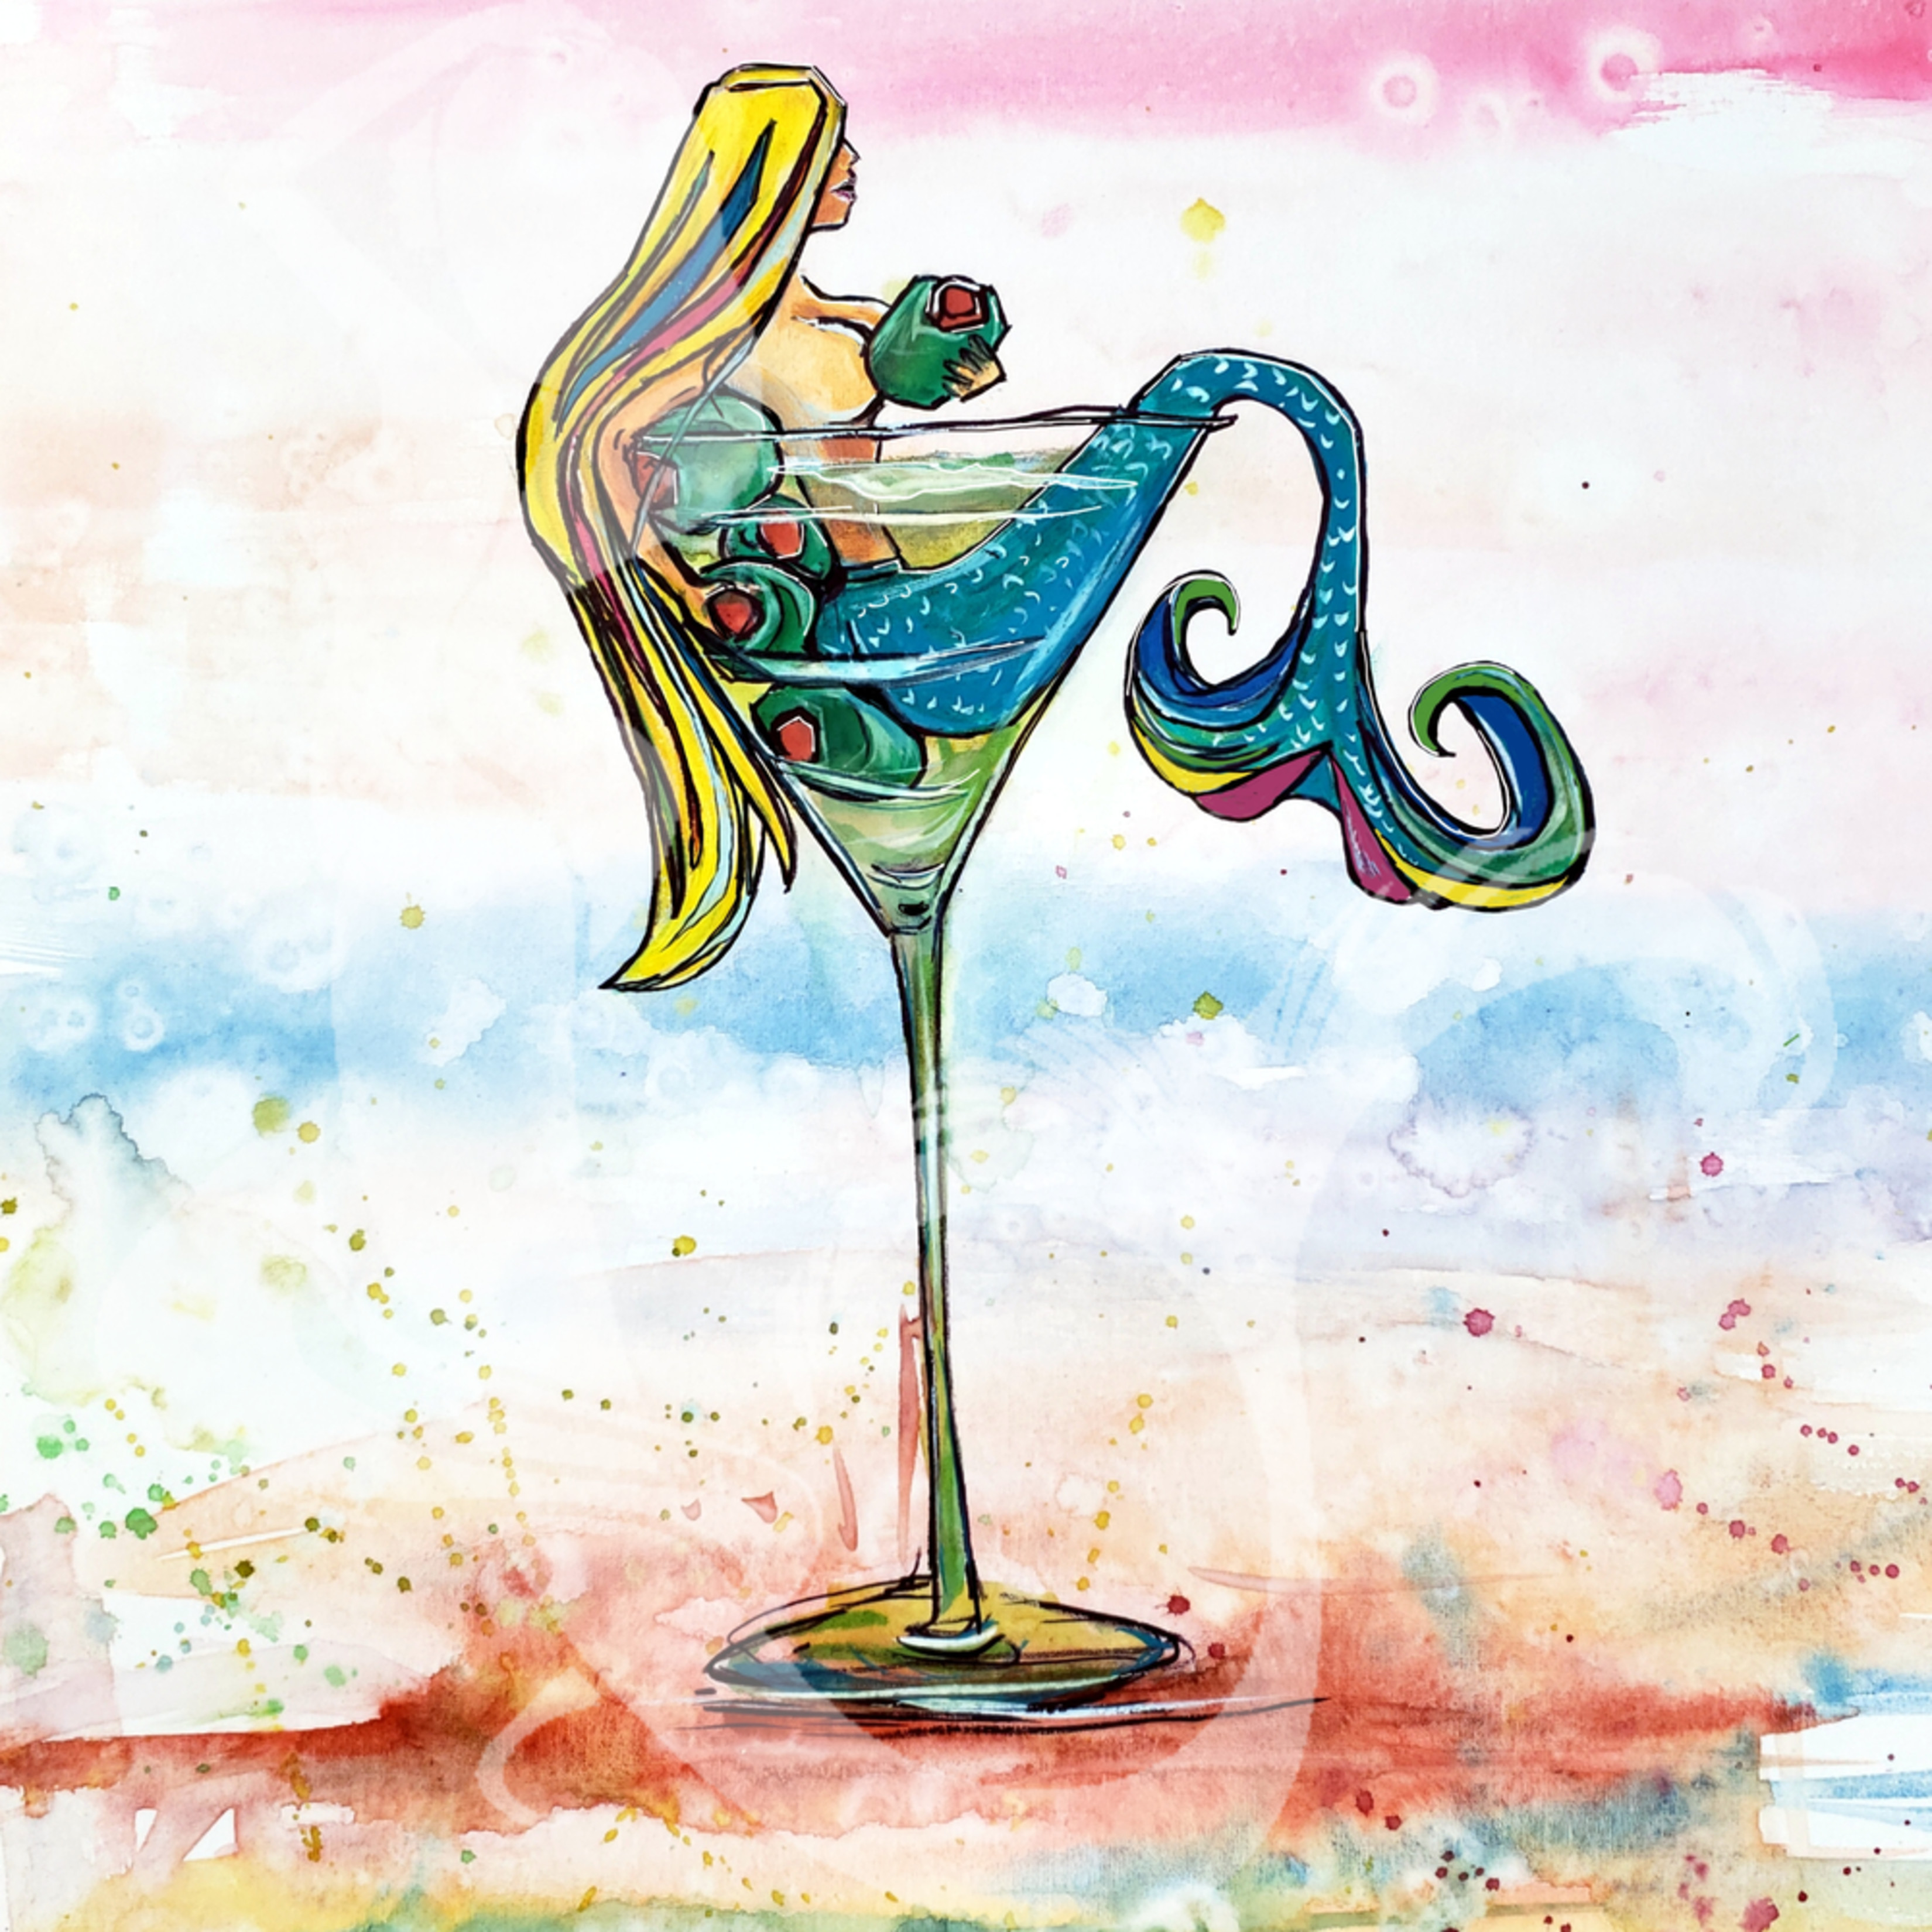 Mermaid olive martini 11x14sign nf2ch1